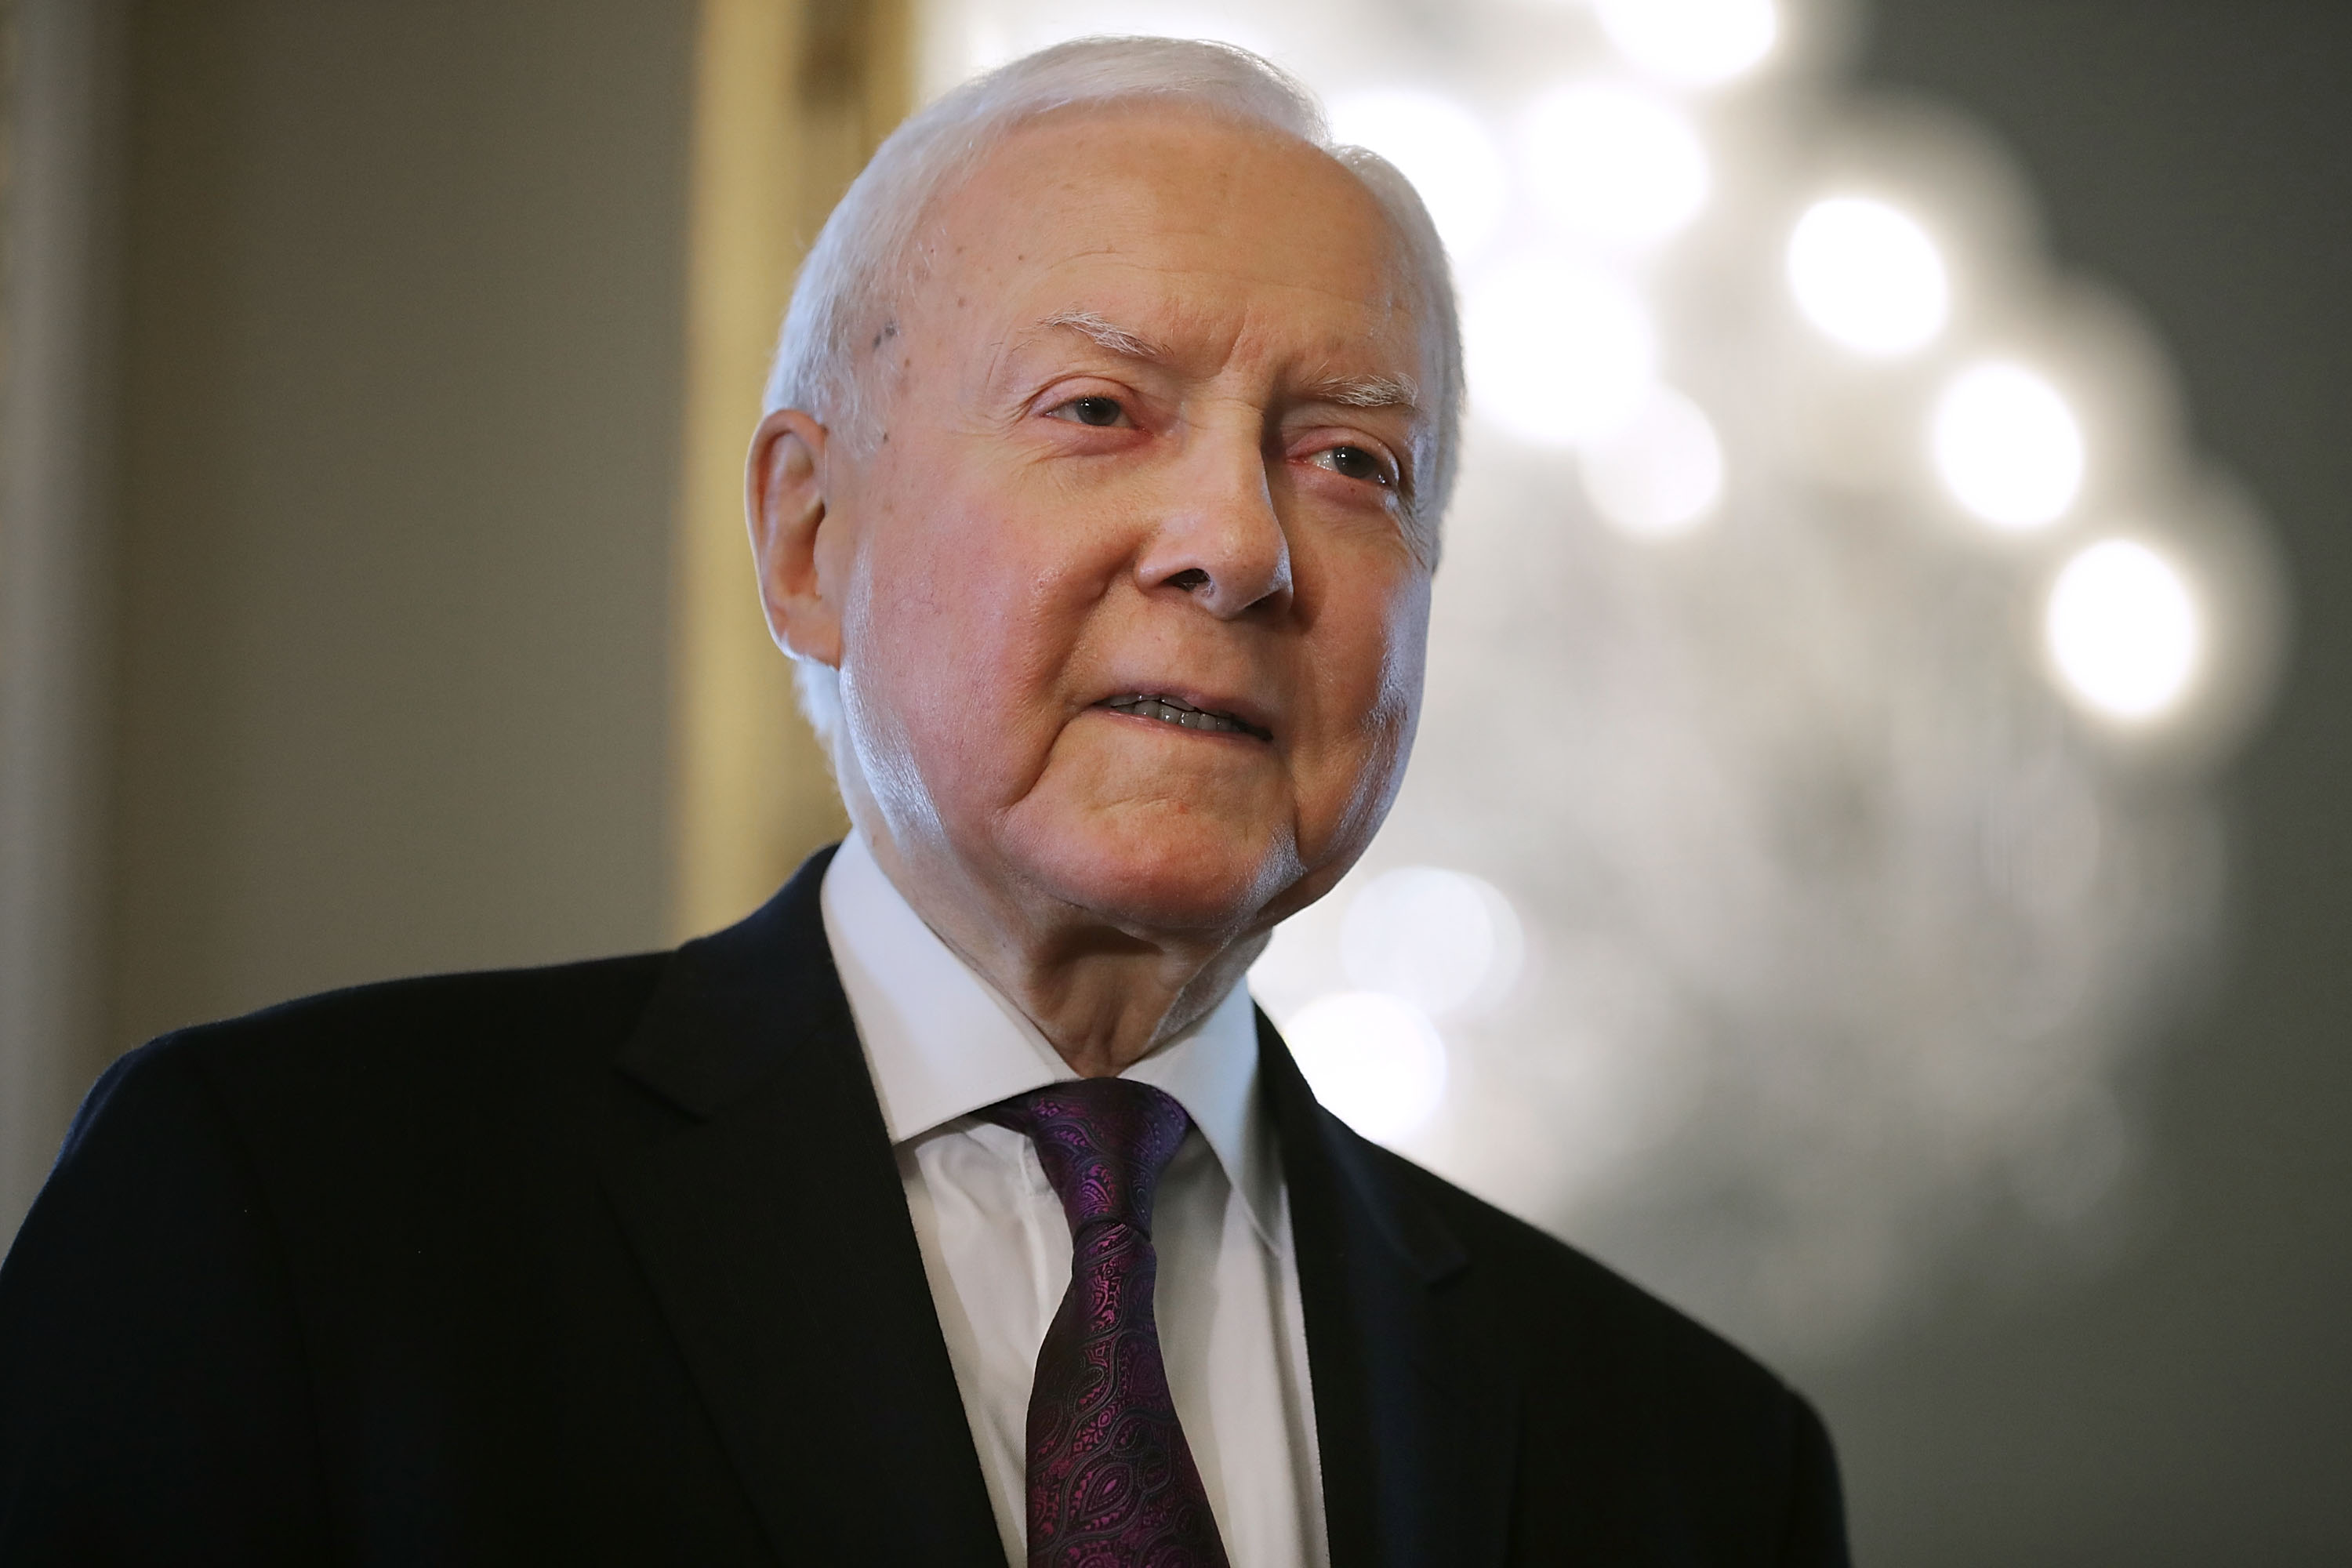 Sen. Orrin Hatch of Utah in July 2018.